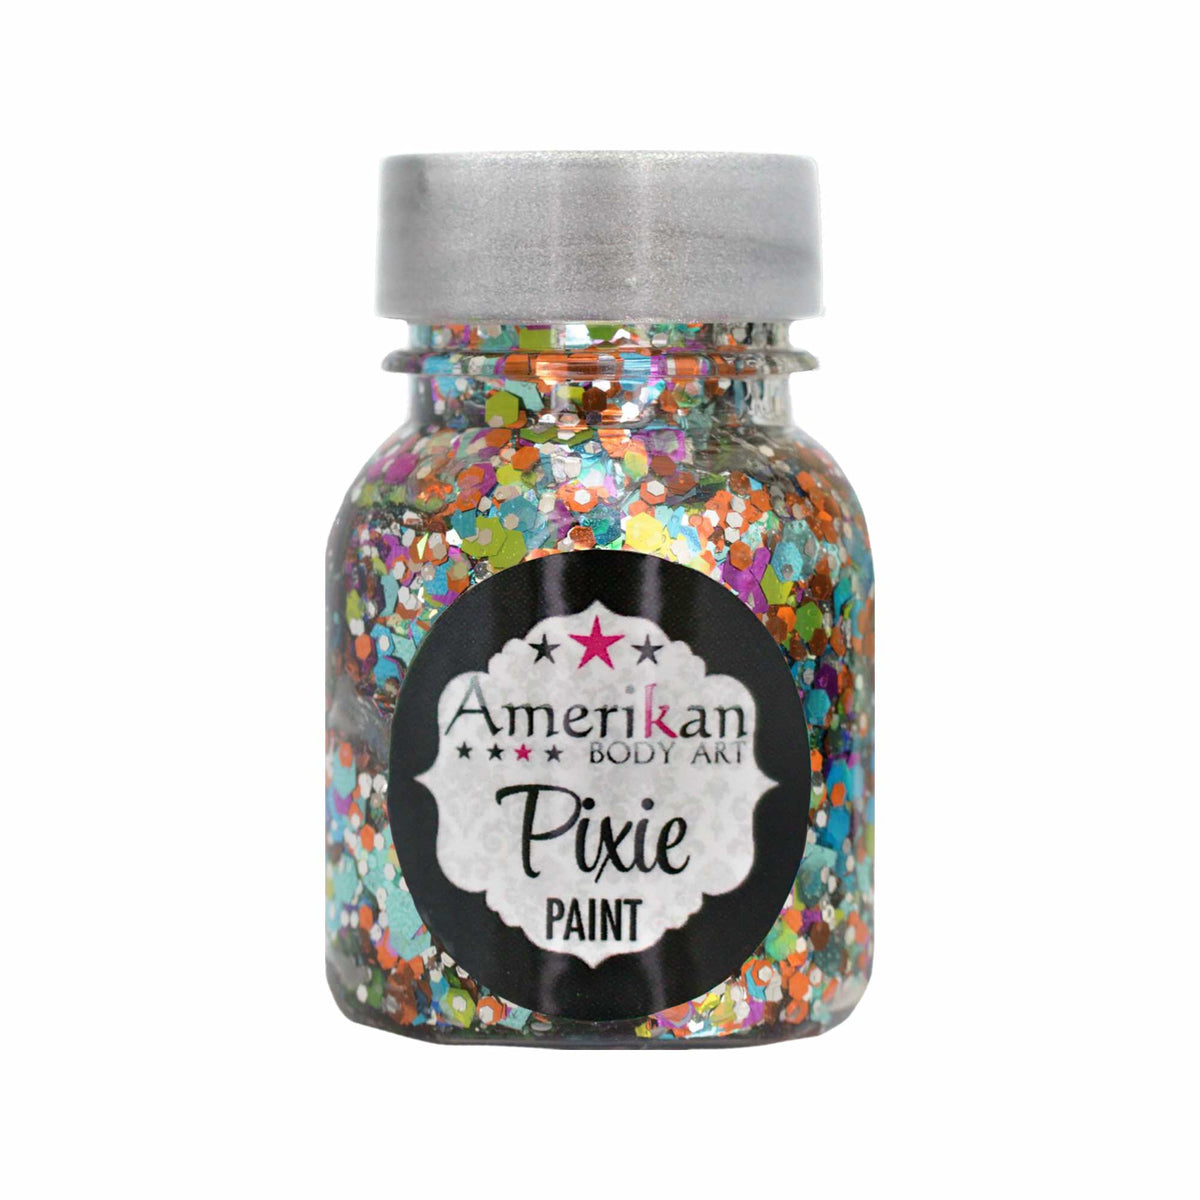 Amerikan Body Art Pixie Paint Glitter Gel